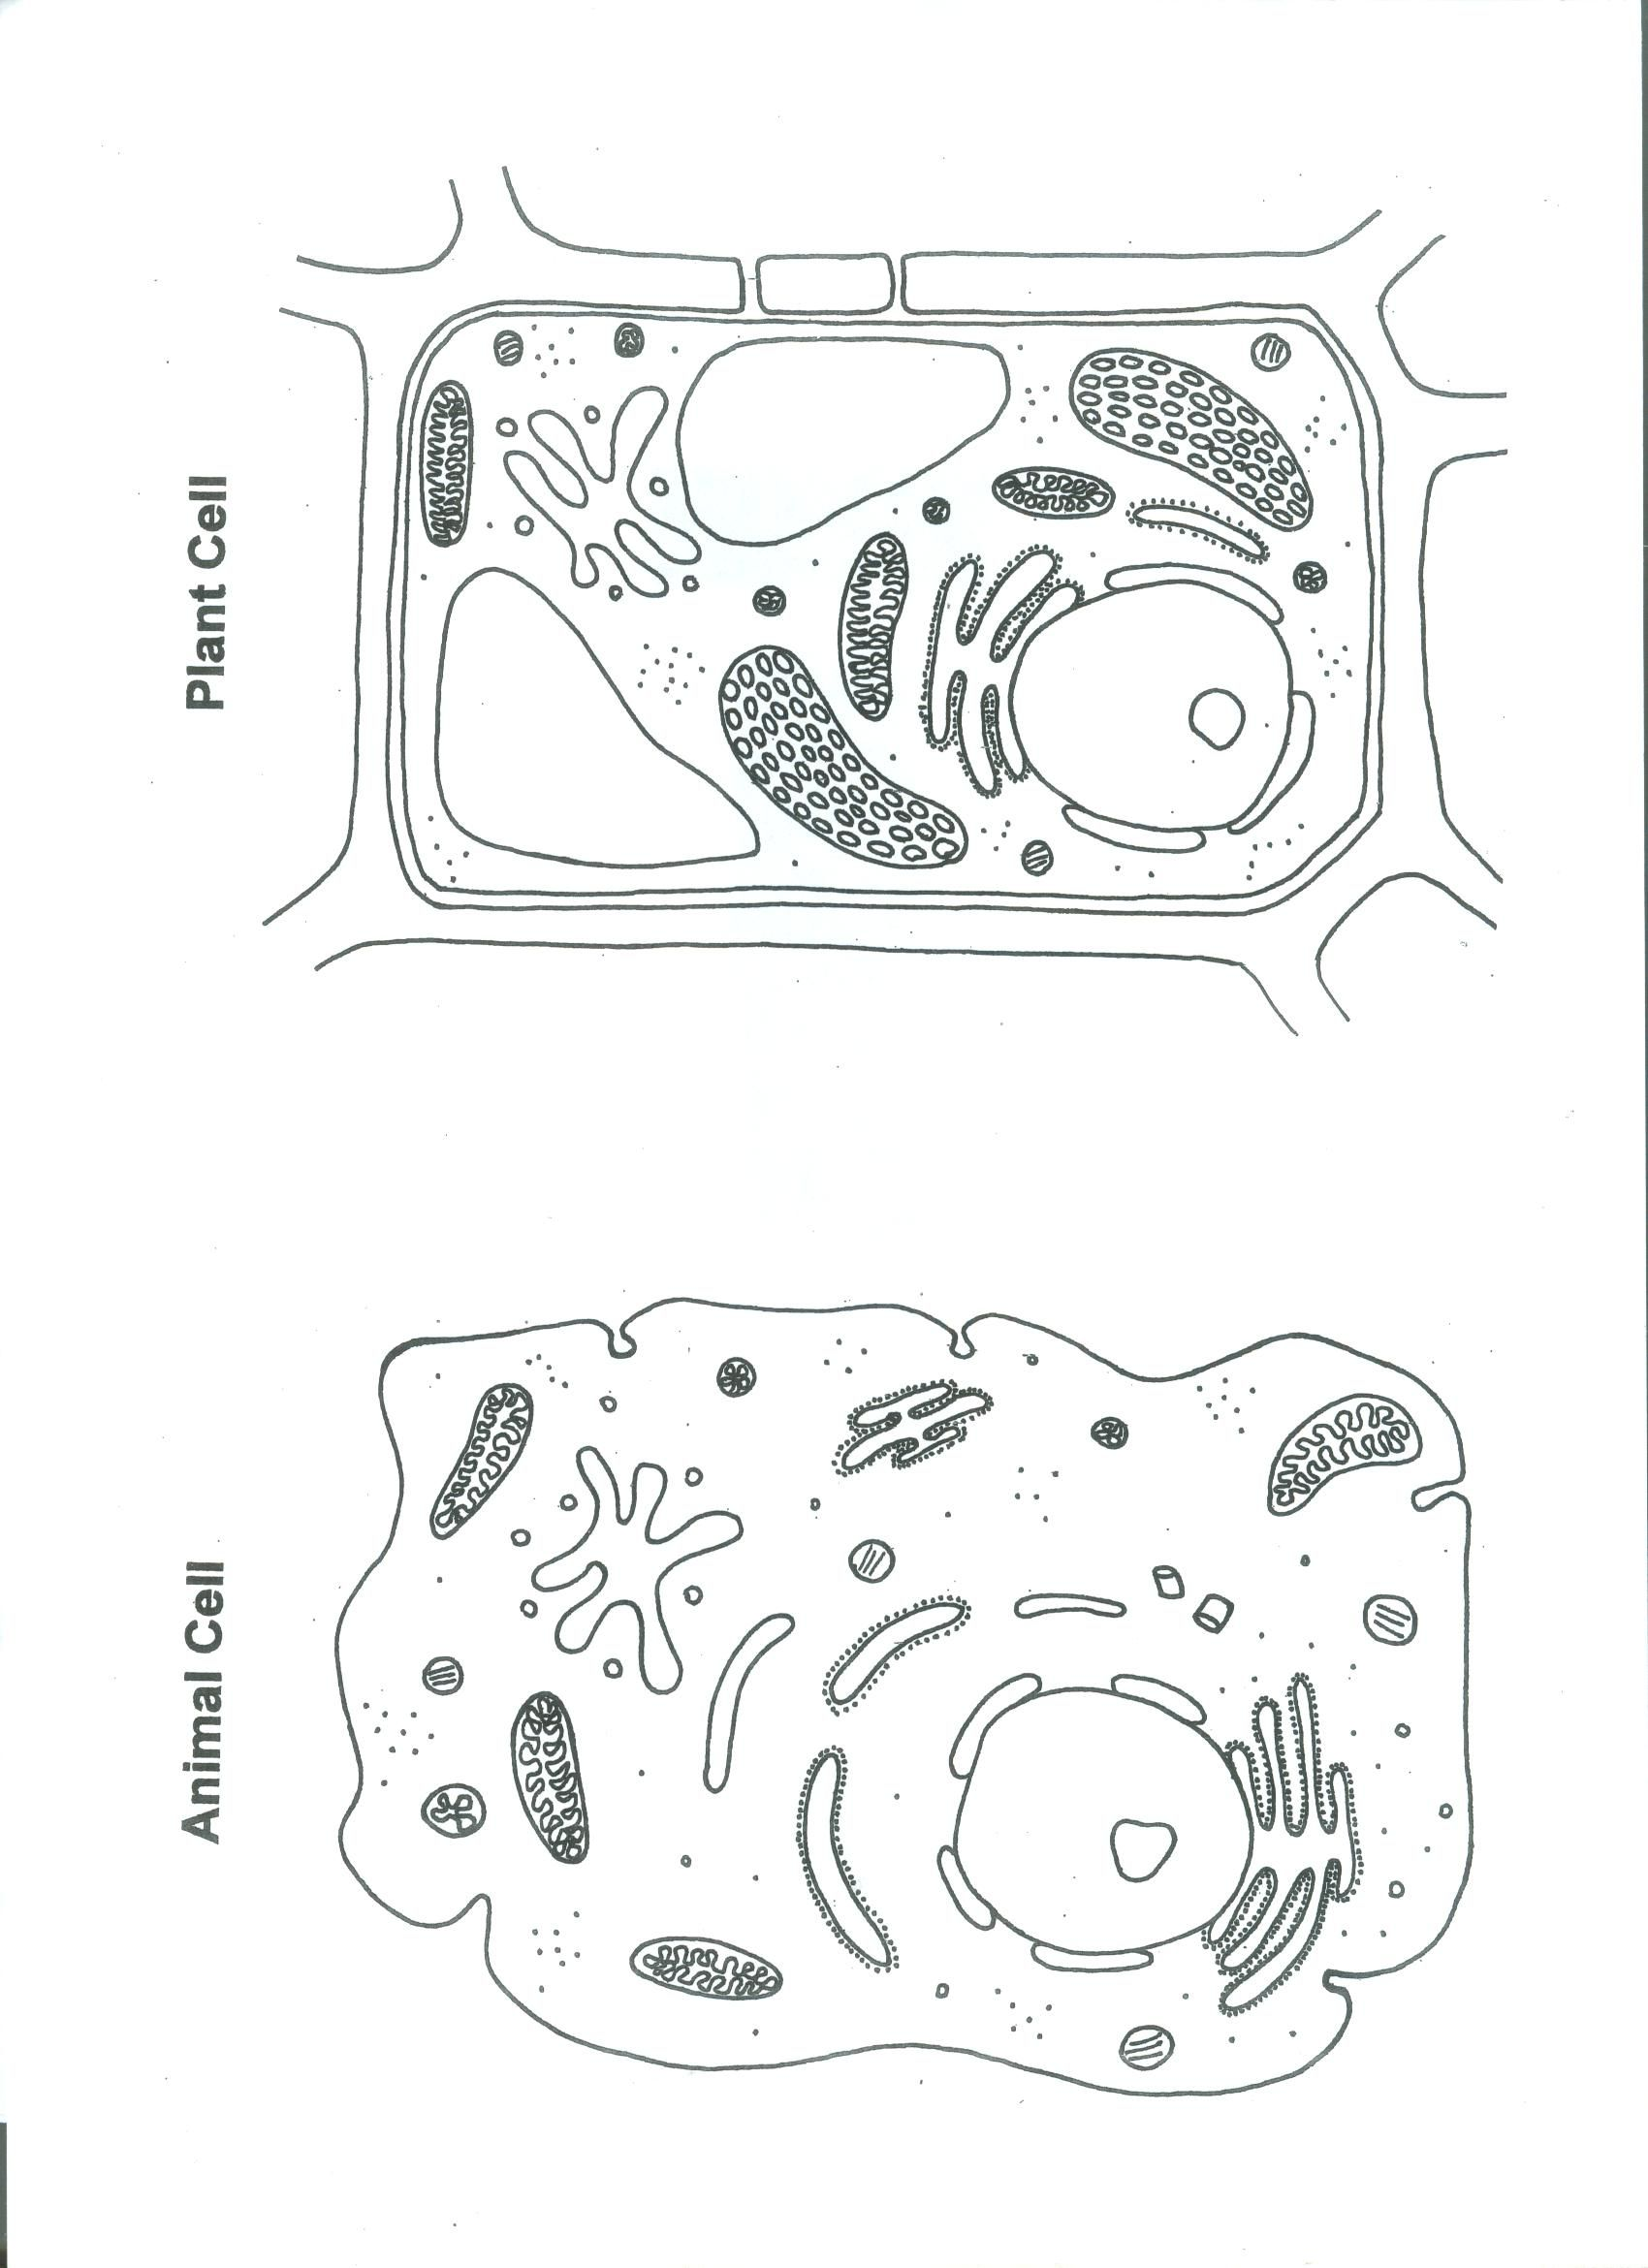 Shrinky Plant And Animal Cell 001 1 700 2 340 Pixels